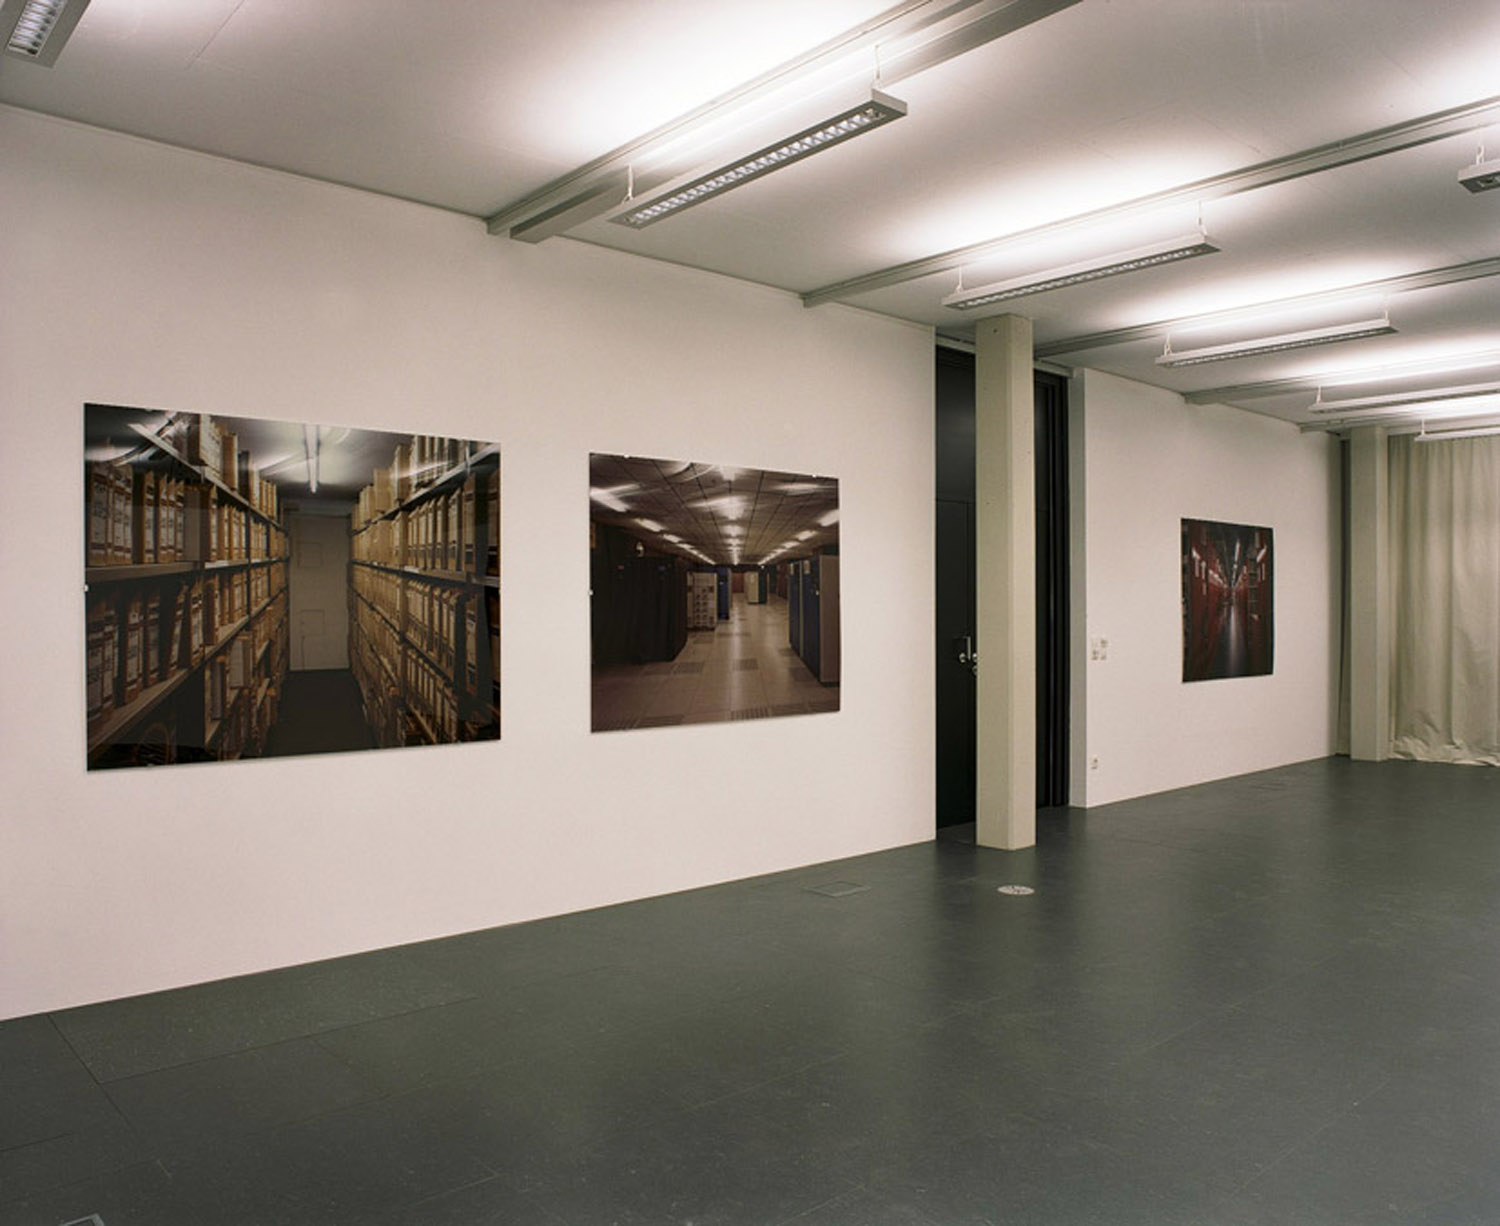 Ernst Logar — Non Public Spaces, Kunstraum Lakeside, 2006 | Photo: Ernst Logar